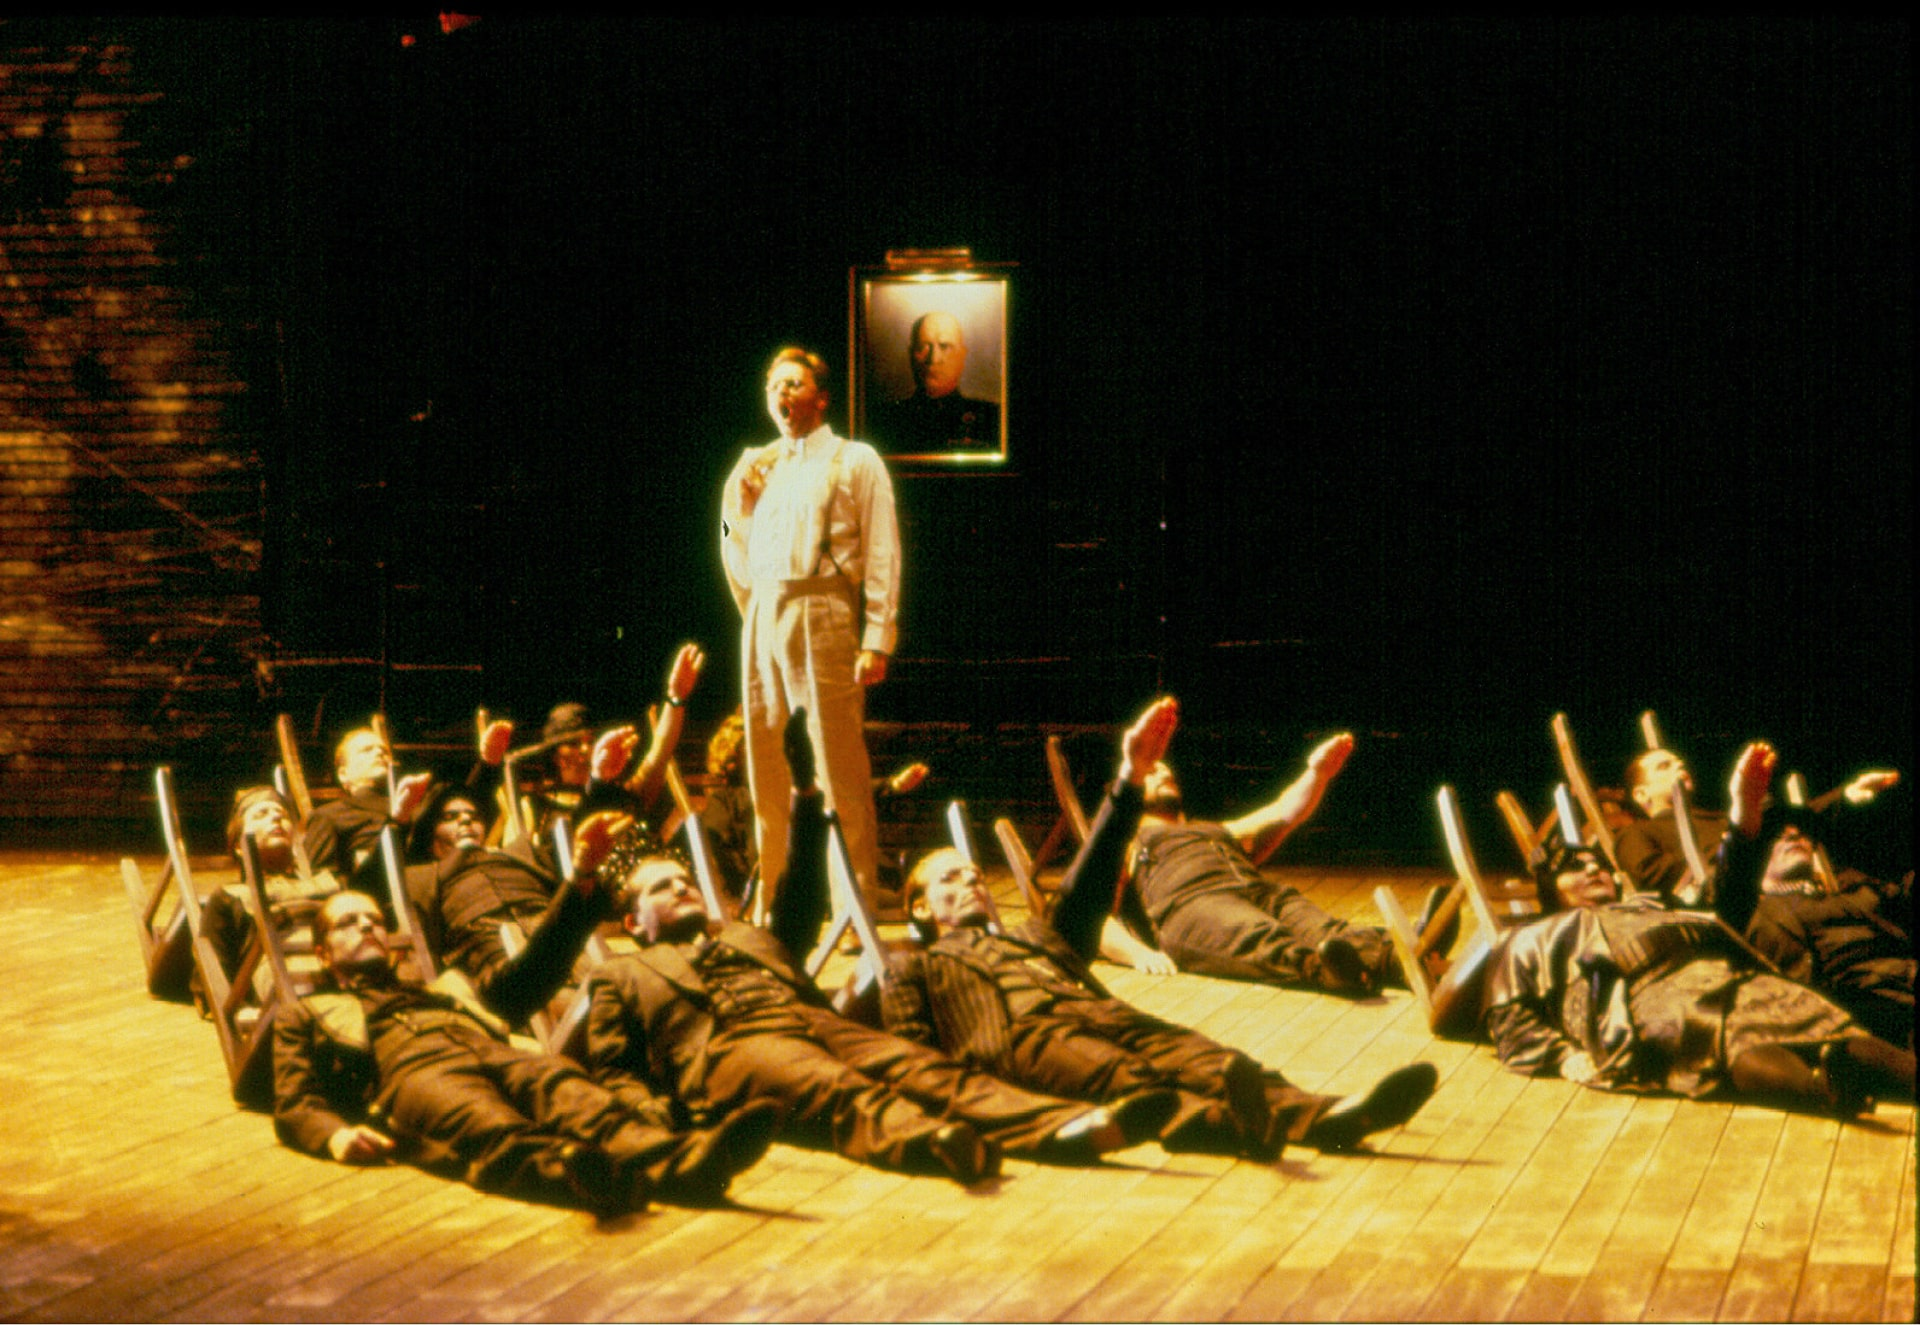 Man in white sings in front of portrait of Mussolini, surrounded by dark-suited men lying on bare wooden floor giving Nazi salute.